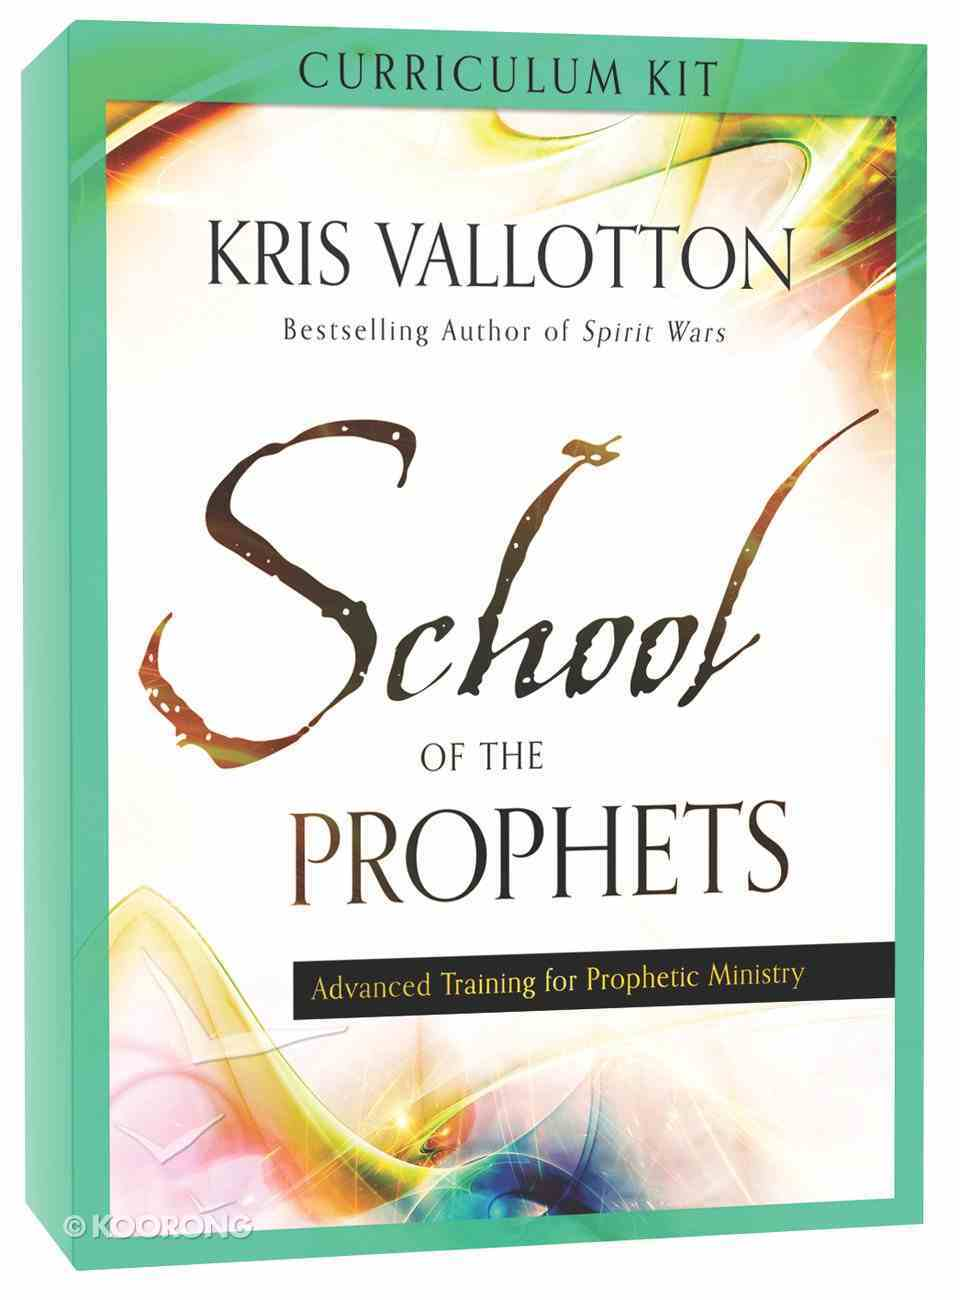 School of the Prophets (Curriculum Kit) Pack